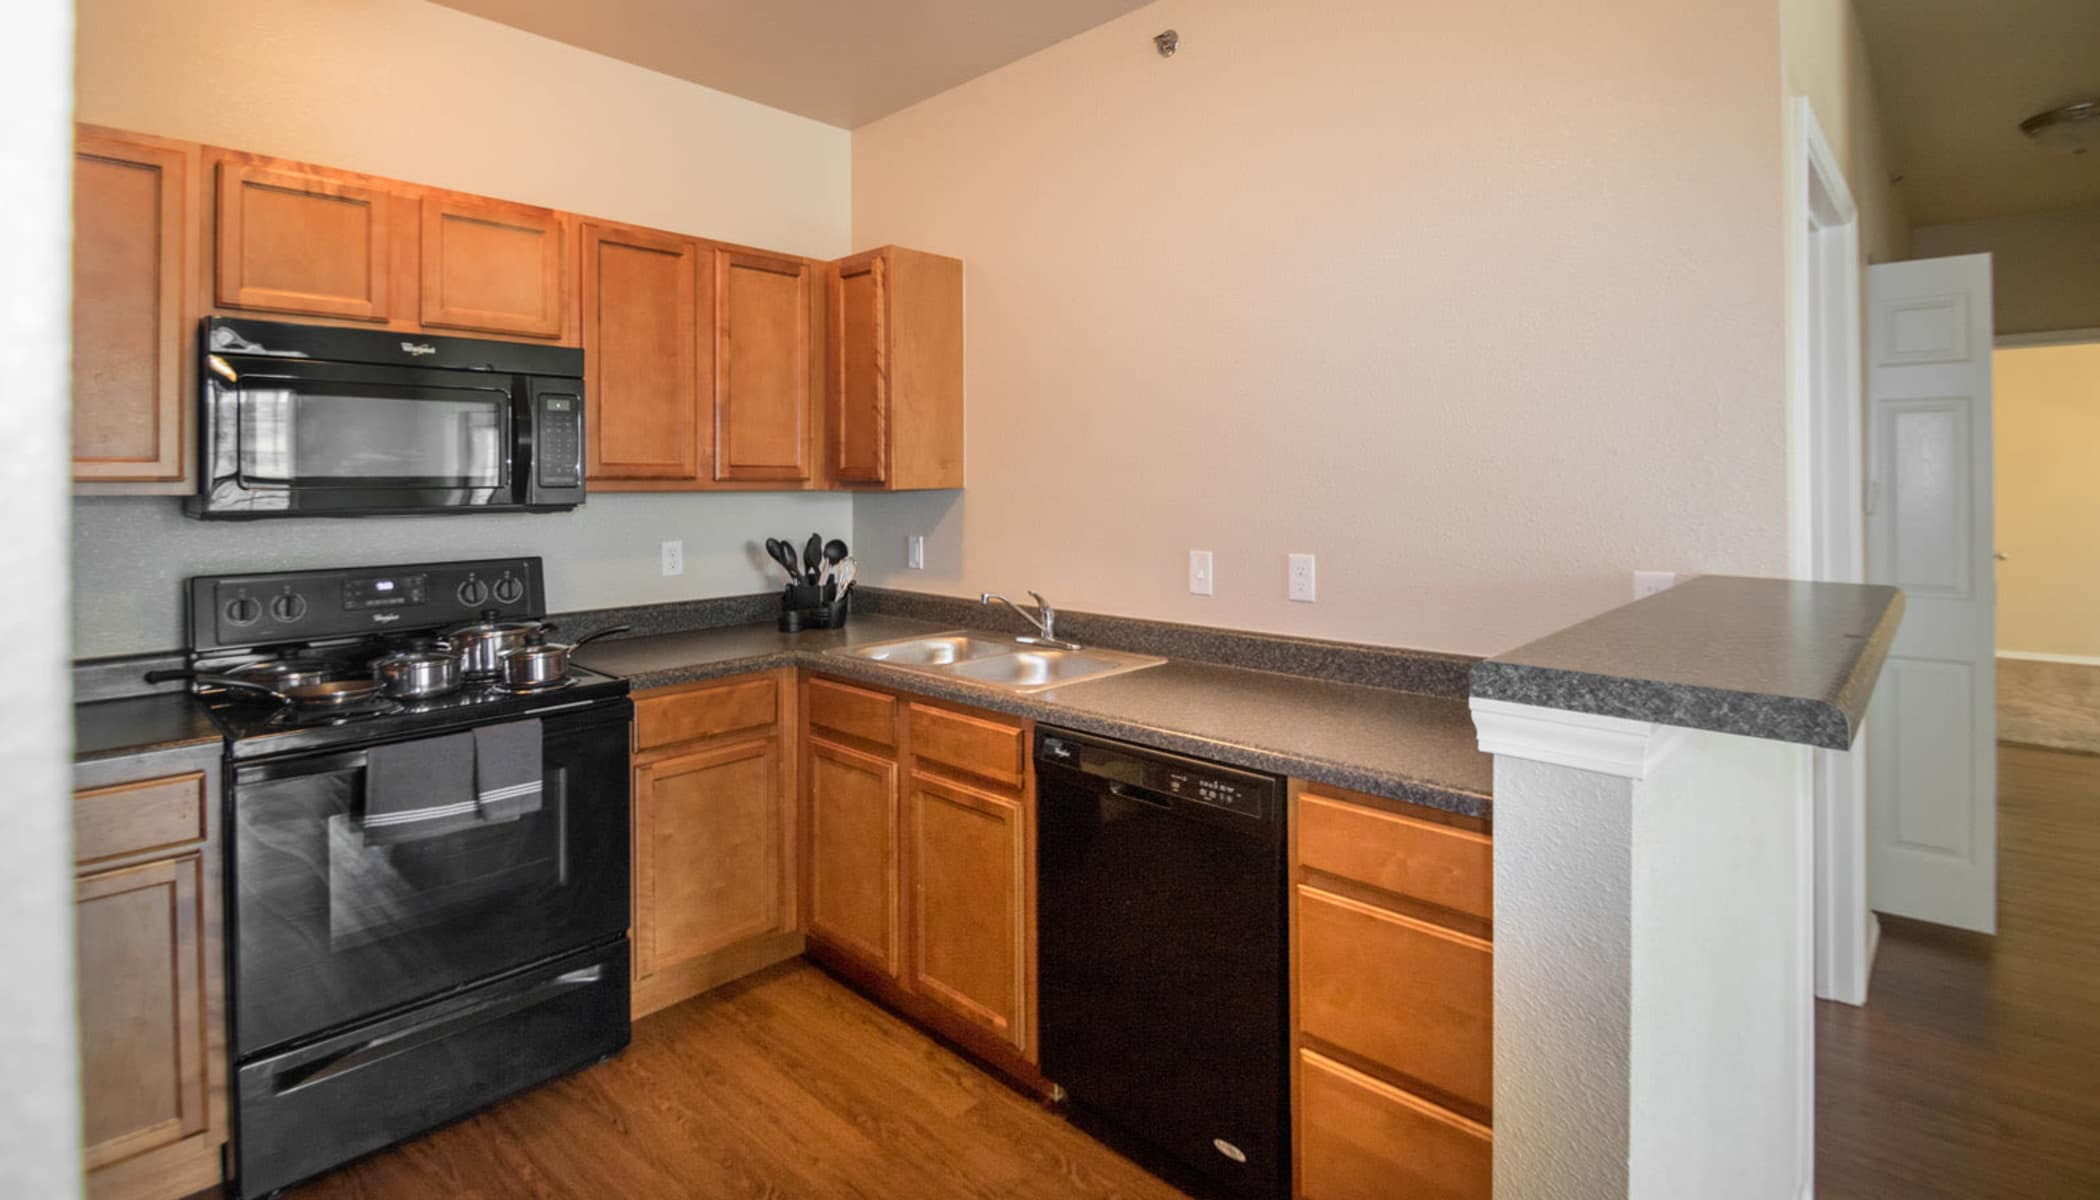 Kitchen at The Reserves at Brookside in Borger, TX